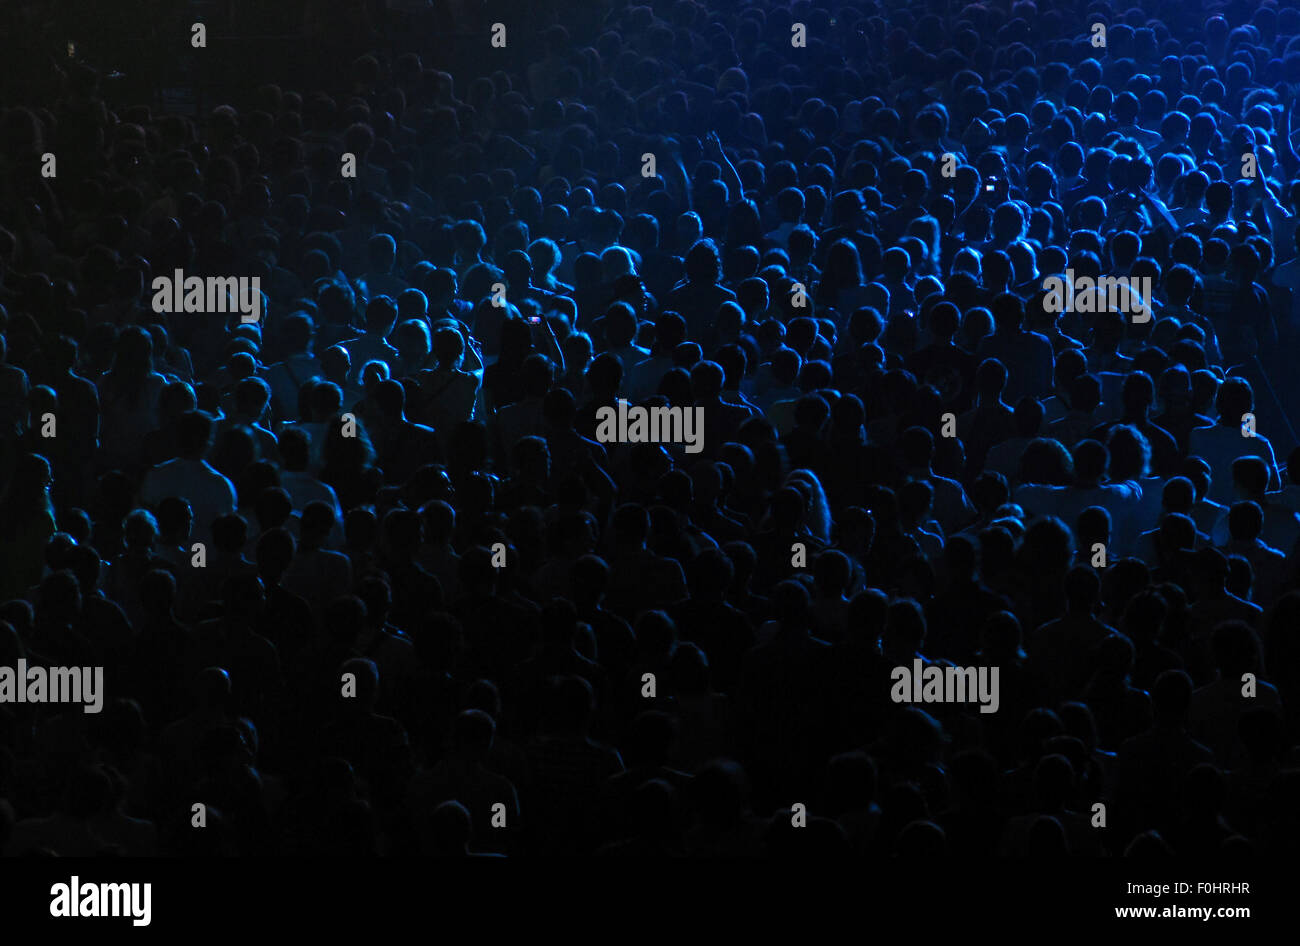 Cheering crowd at the rock concert in a concert hall - Stock Image